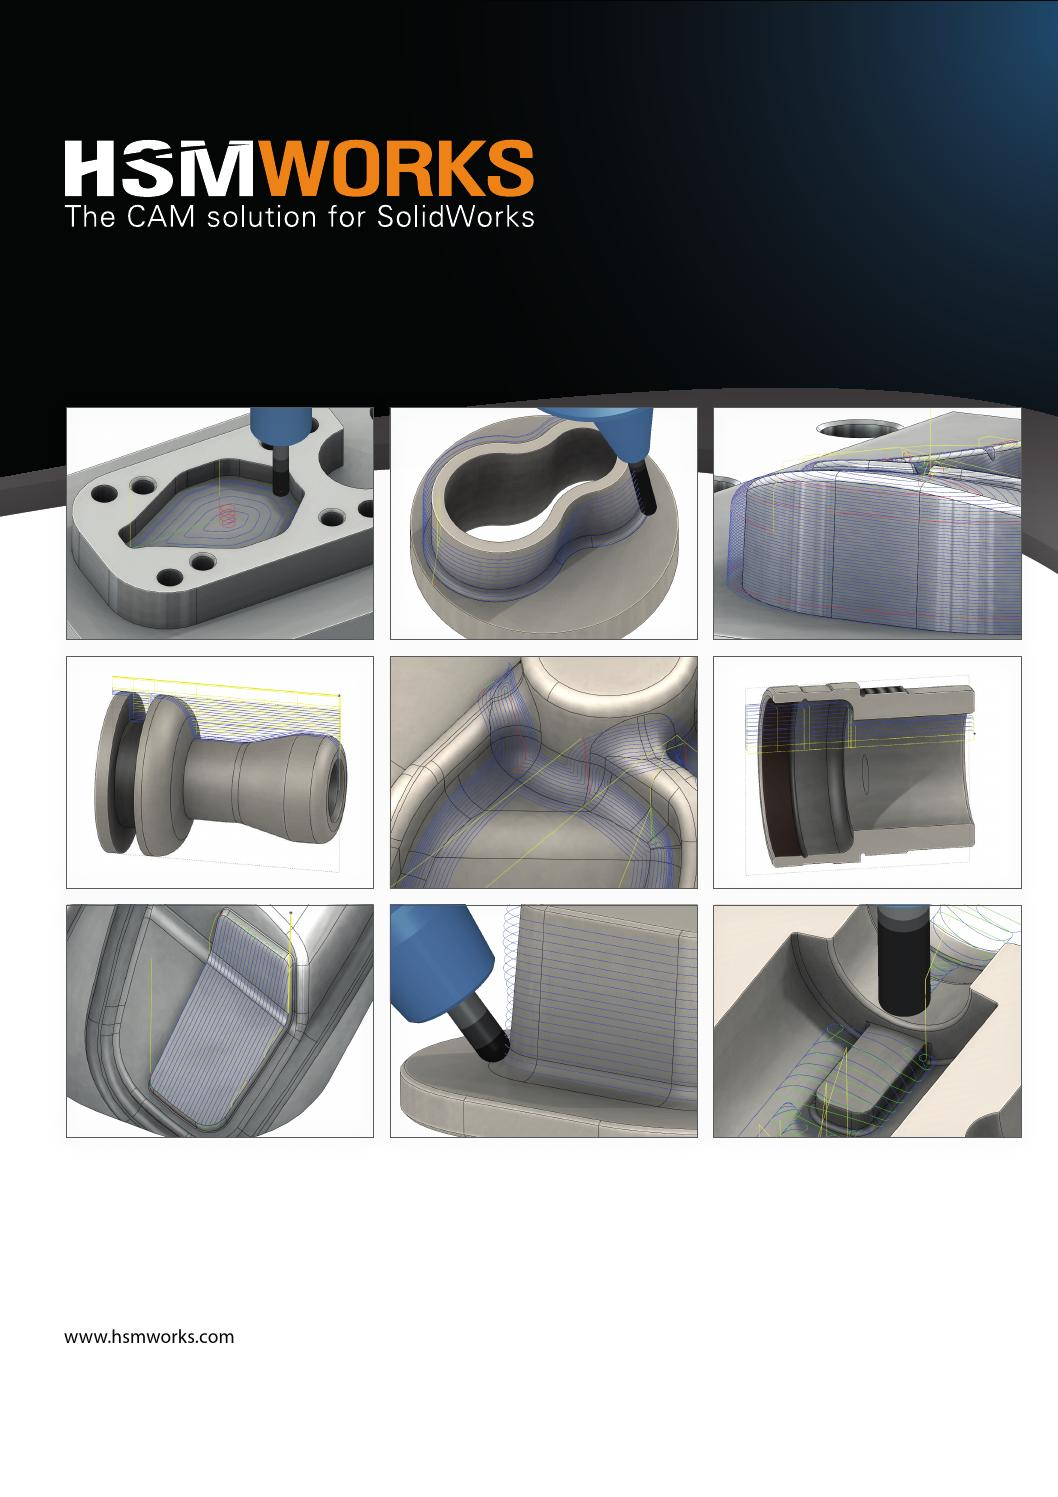 About HSMWorks: The True SolidWorks CAM Experience by MCD